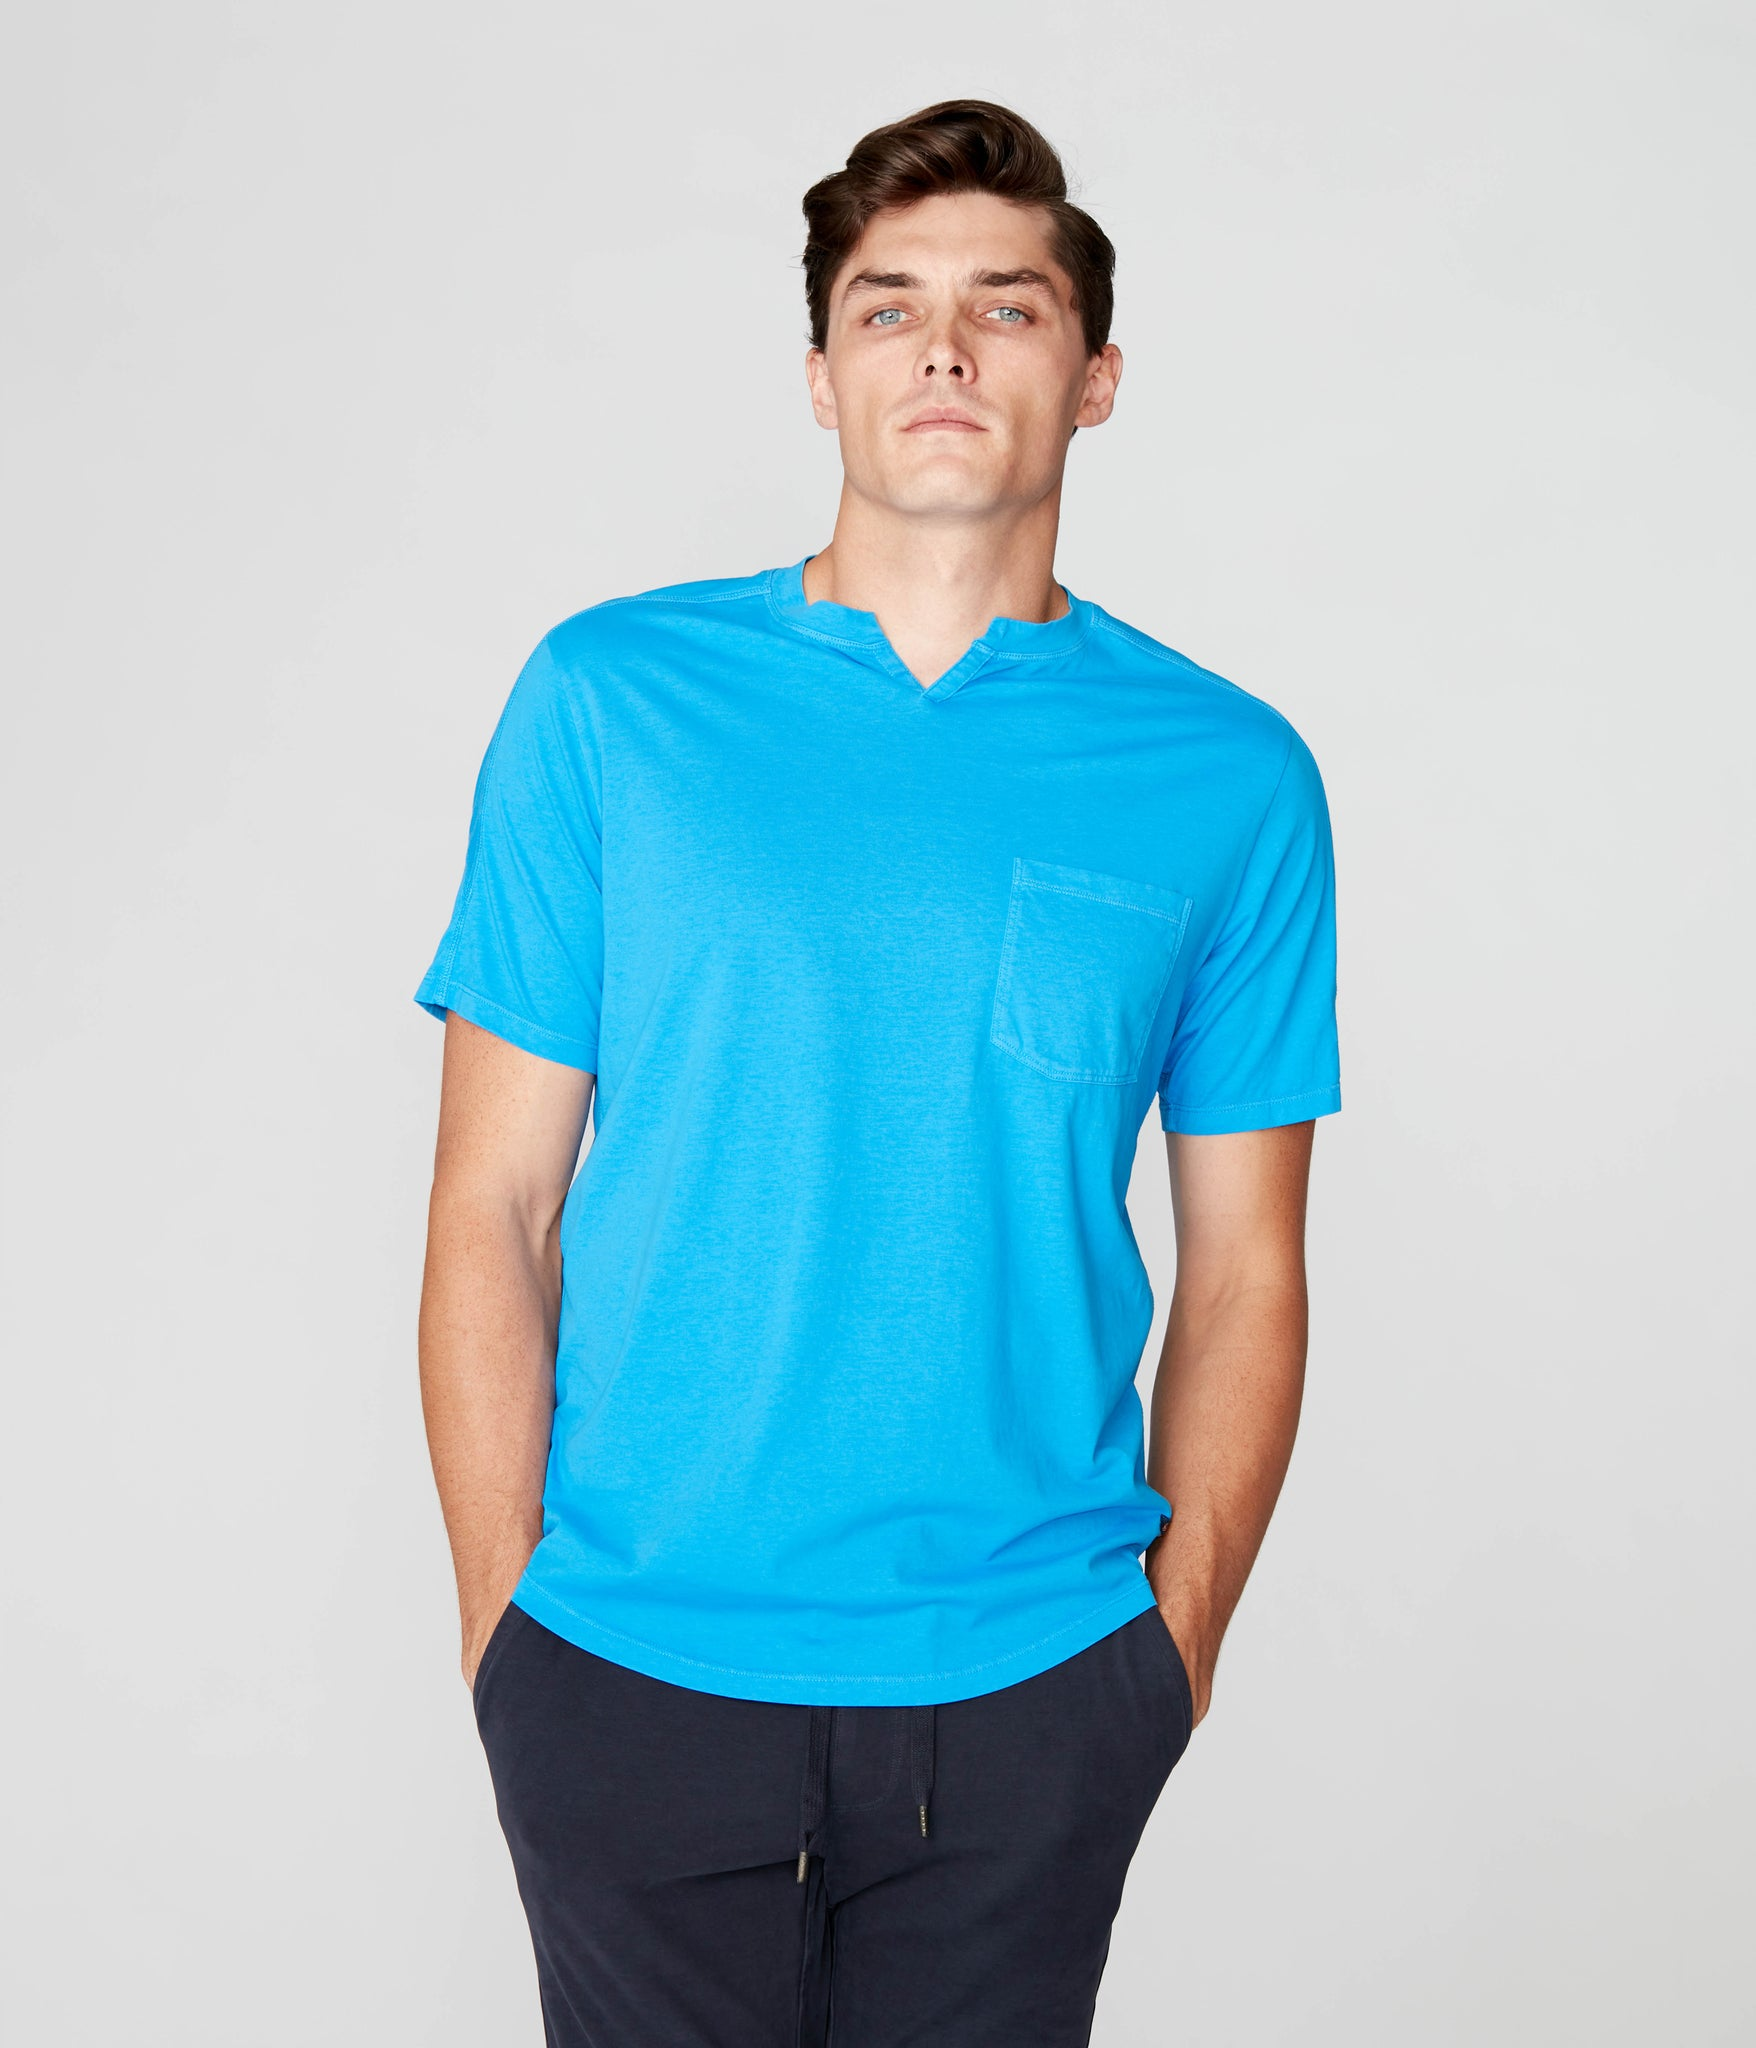 Victory V-Notch in Premium Cotton Jersey  - French Blue